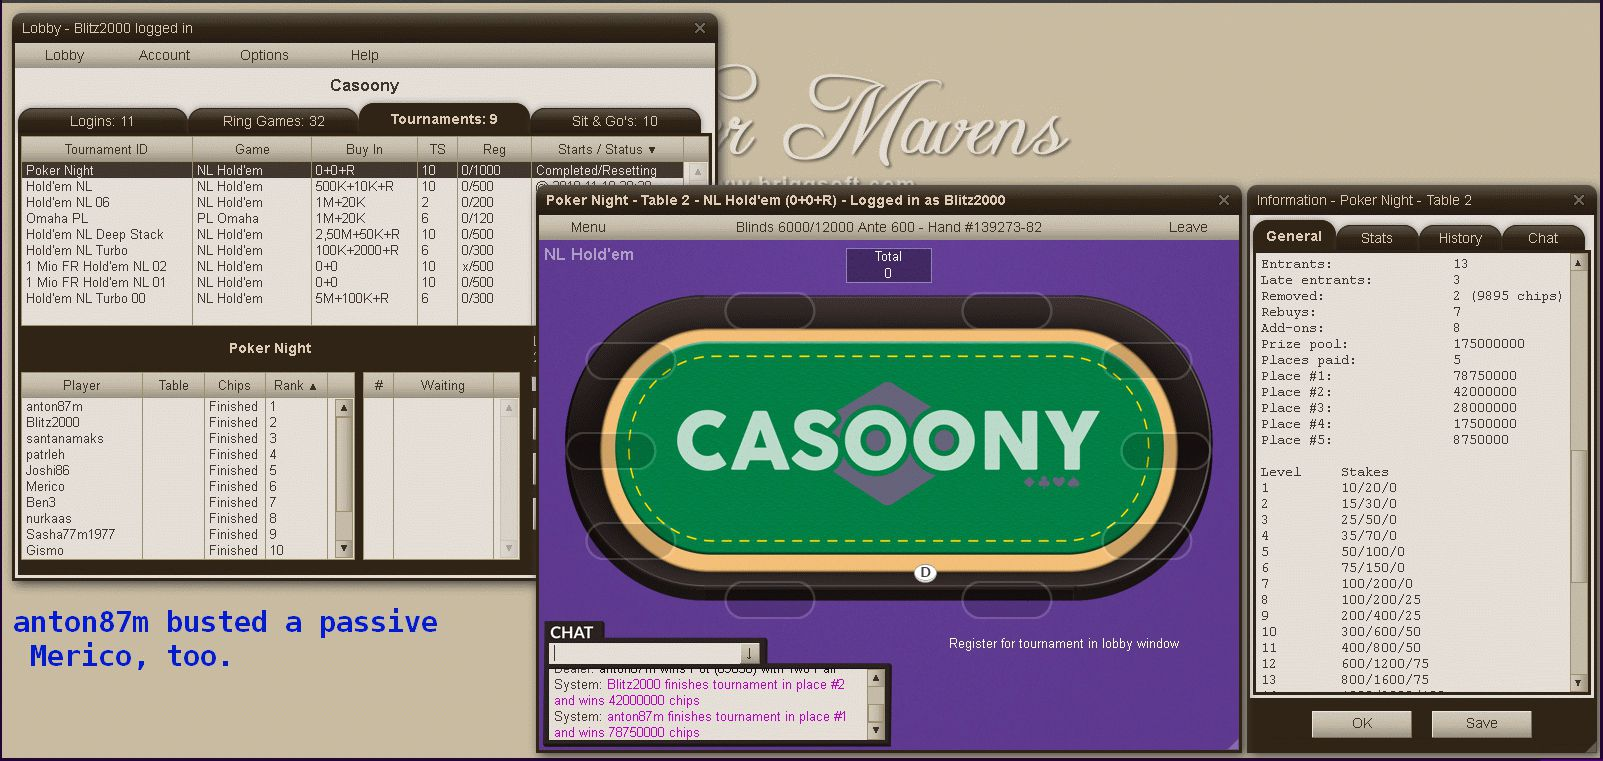 Casoony_Poker_Lobby-PokerNight_20191117_2139_2_2NDPLACE_SHOW.gif